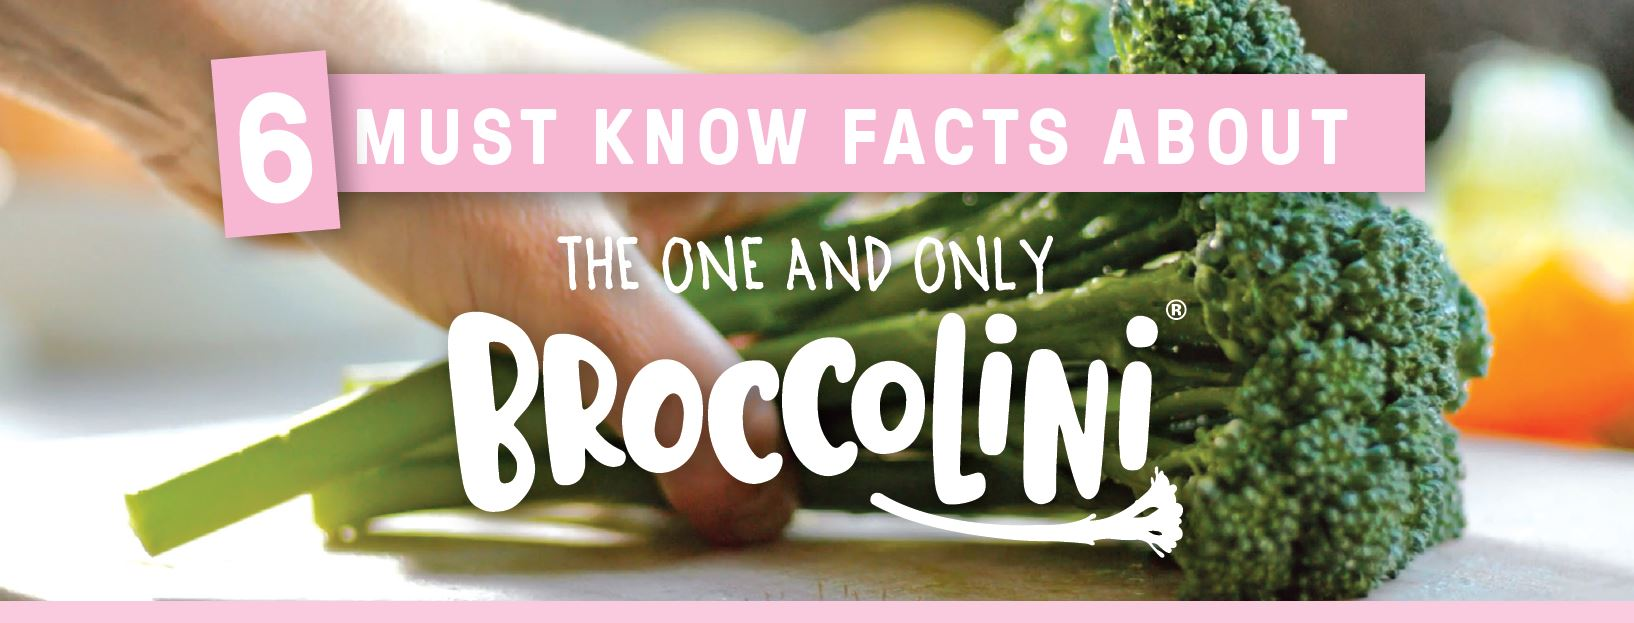 Broccolini One and Only Banner-2